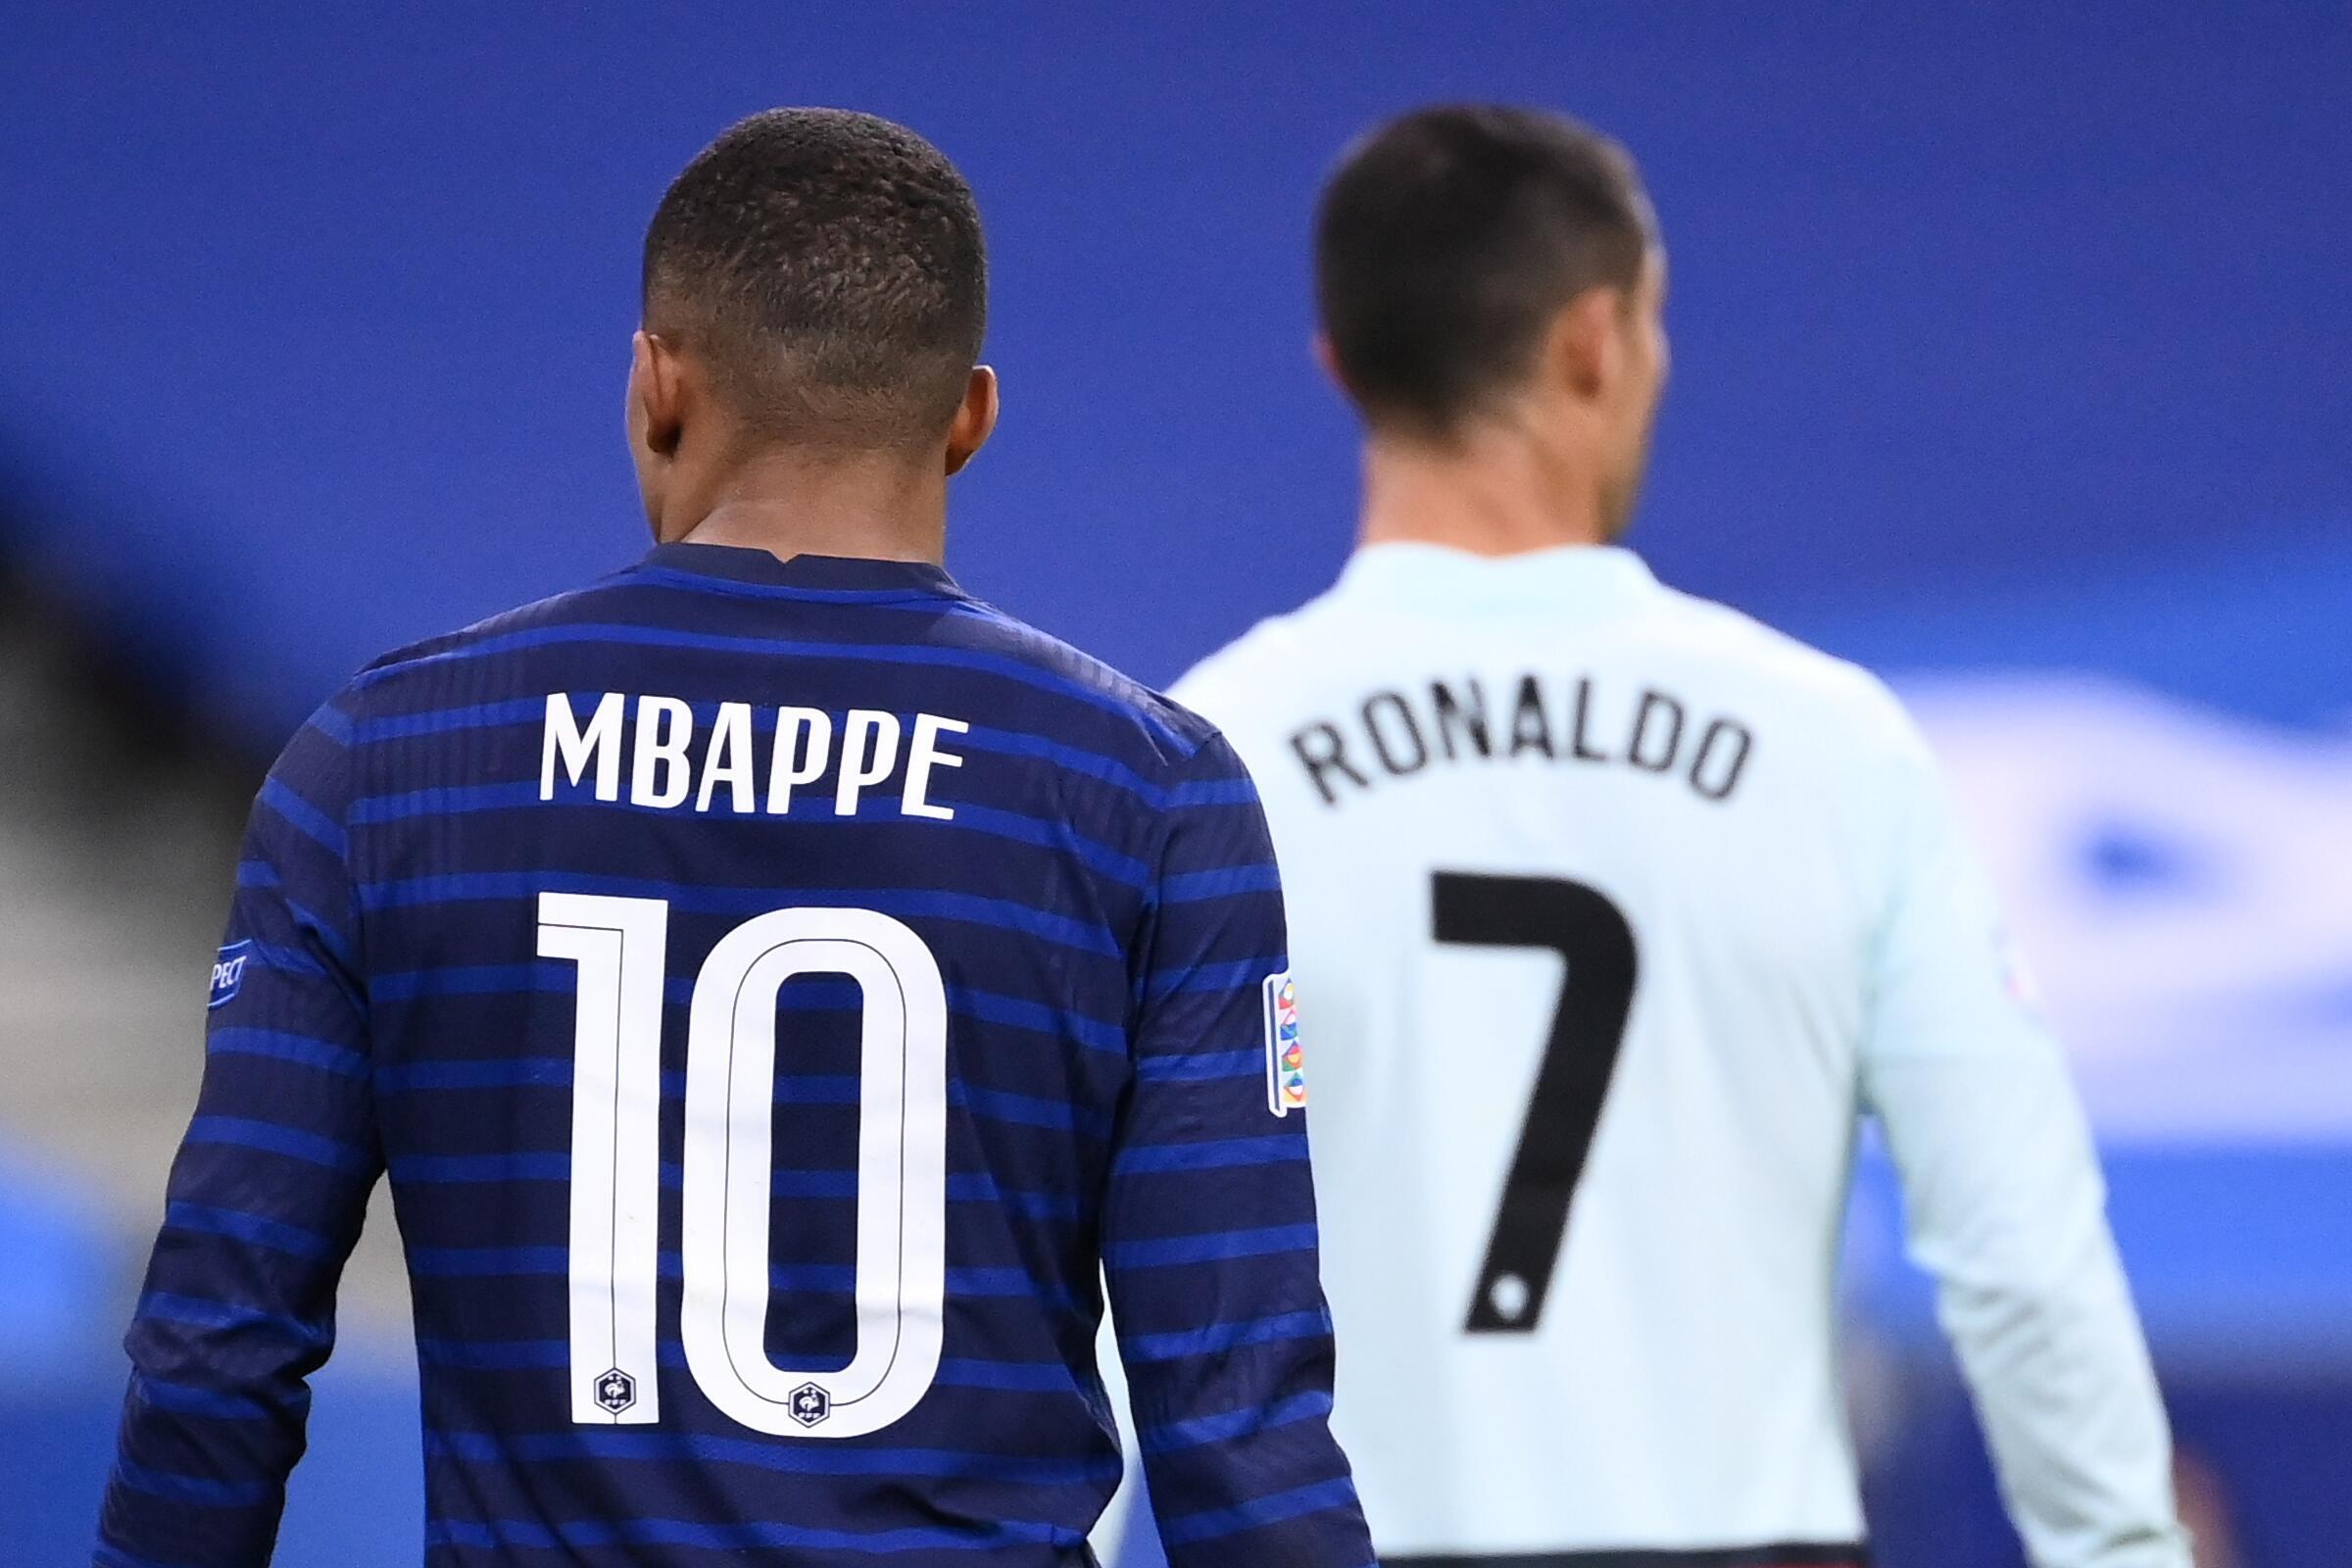 Stellar attacking talent failed to produce the goods in France's 0-0 draw with Portugal